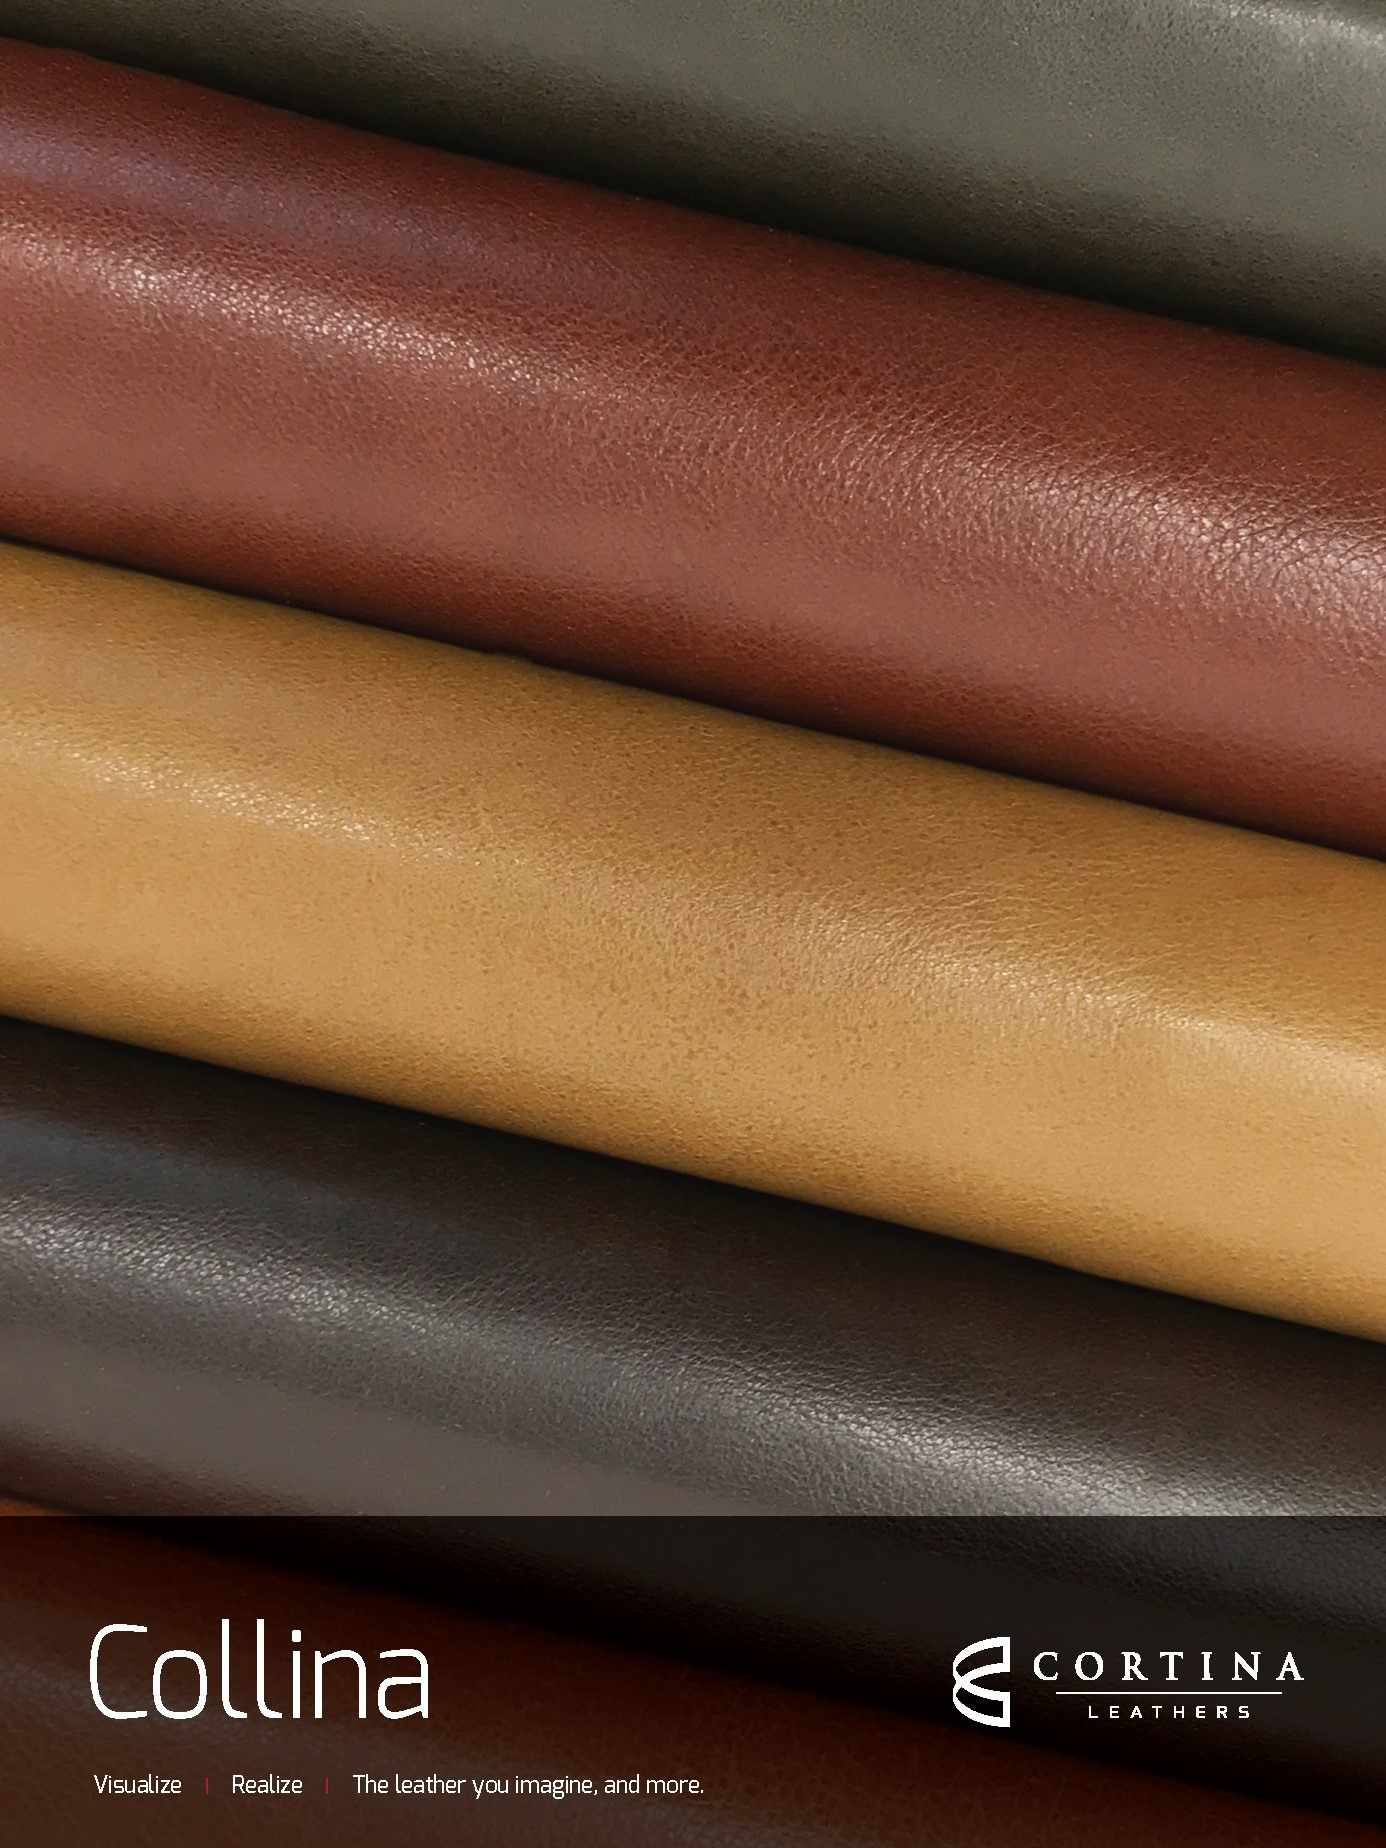 Collina Leather